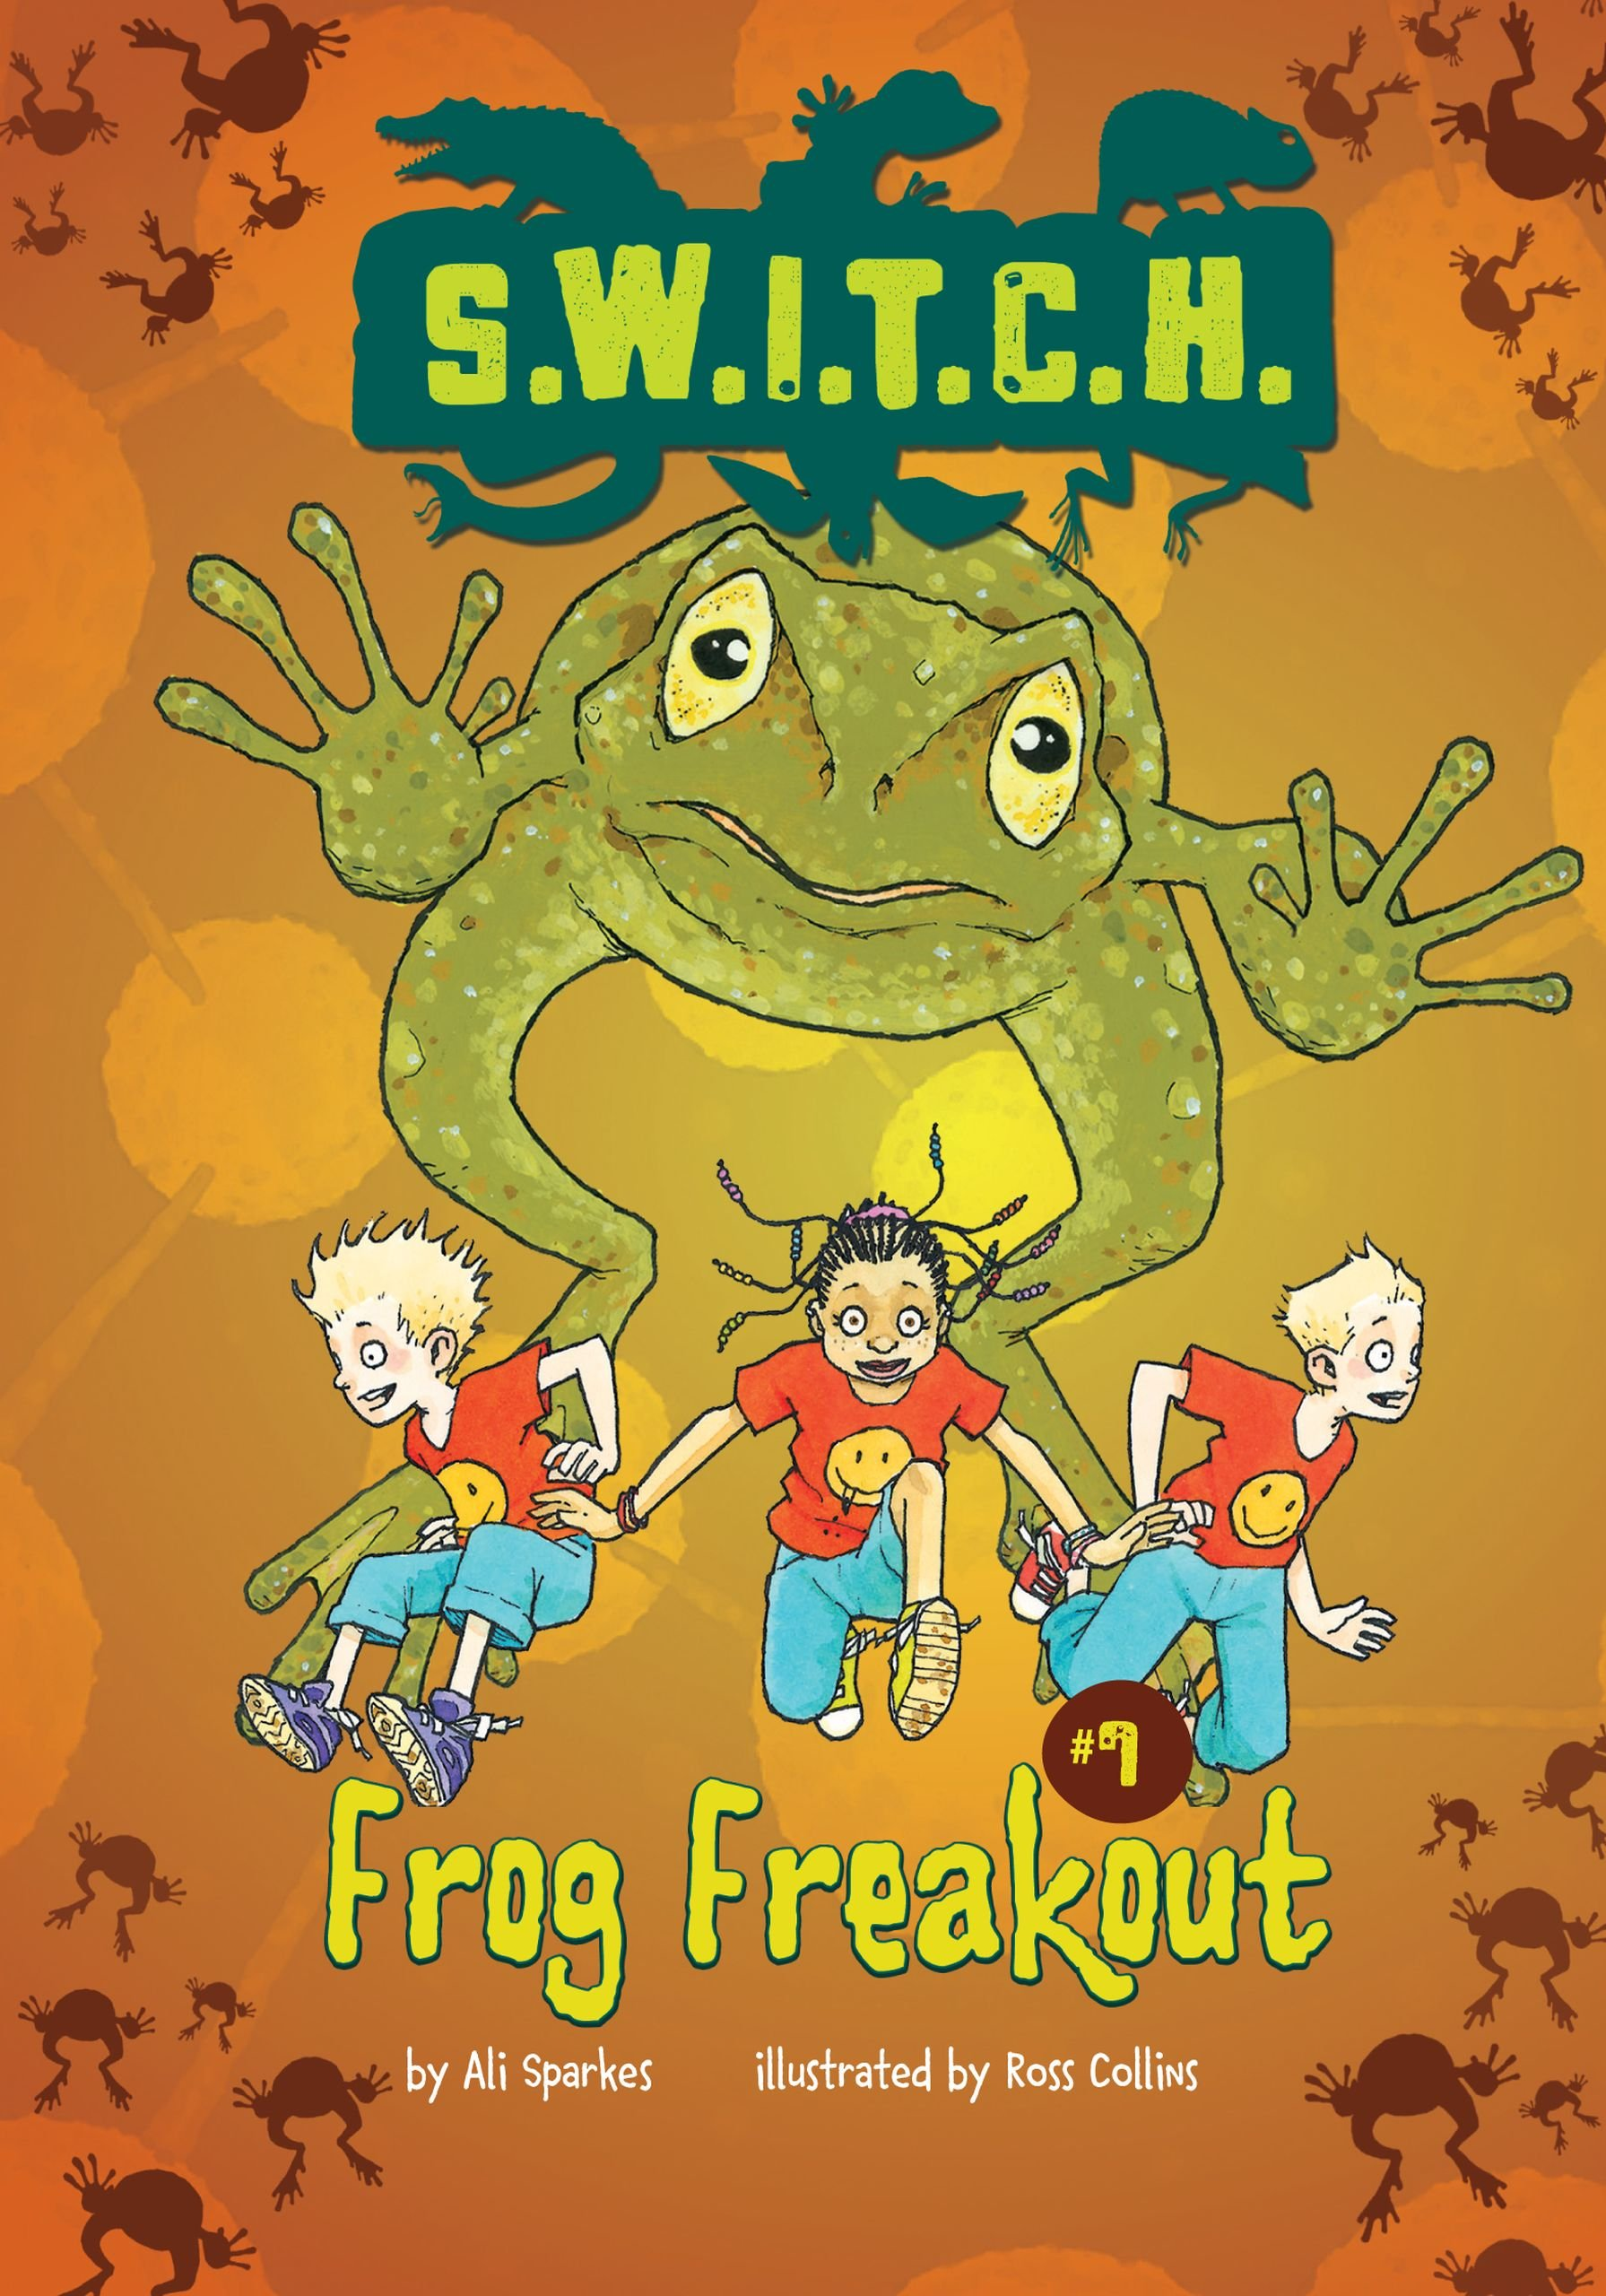 Download Frog Freakout (S.W.I.T.C.H.) ebook